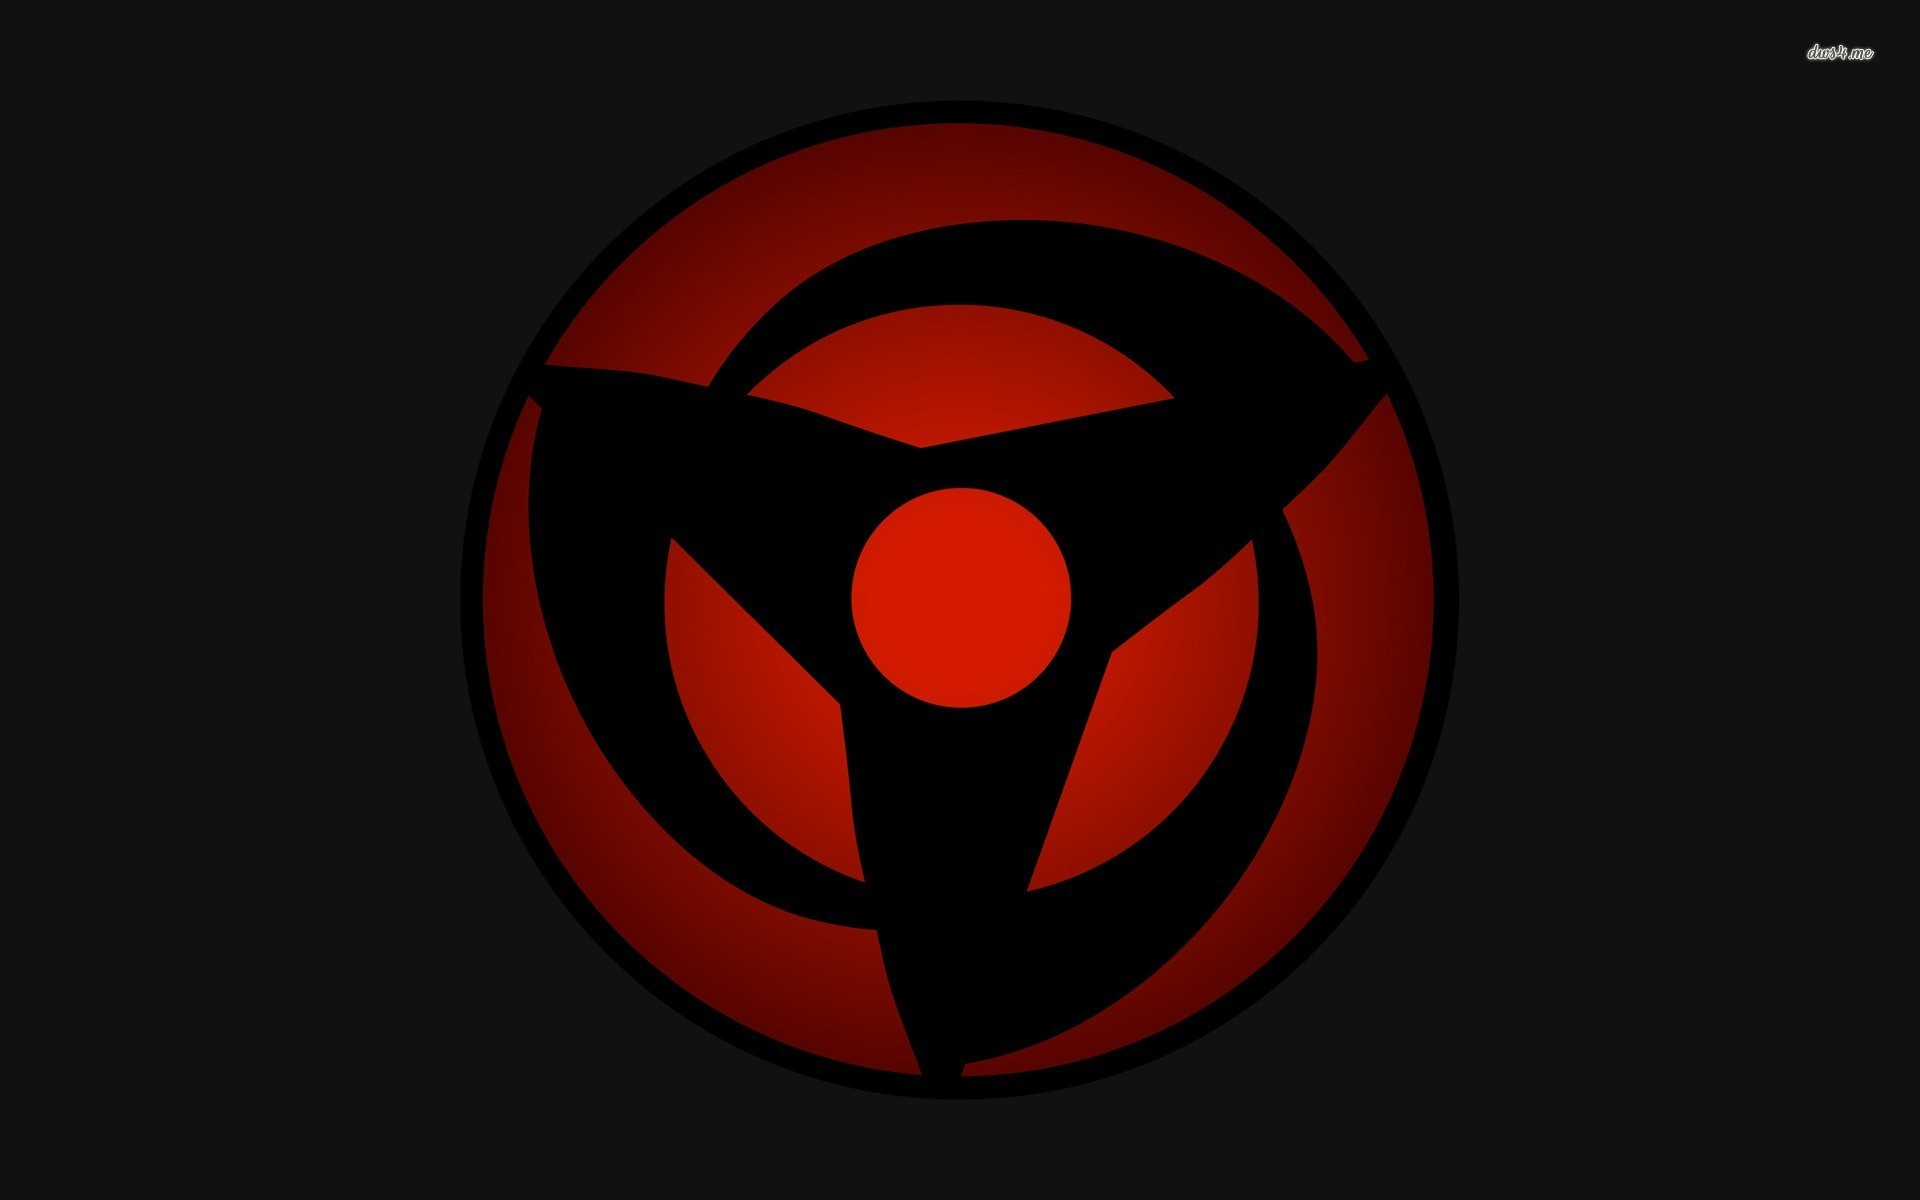 live sharingan wallpaper for pc 1920a—1200